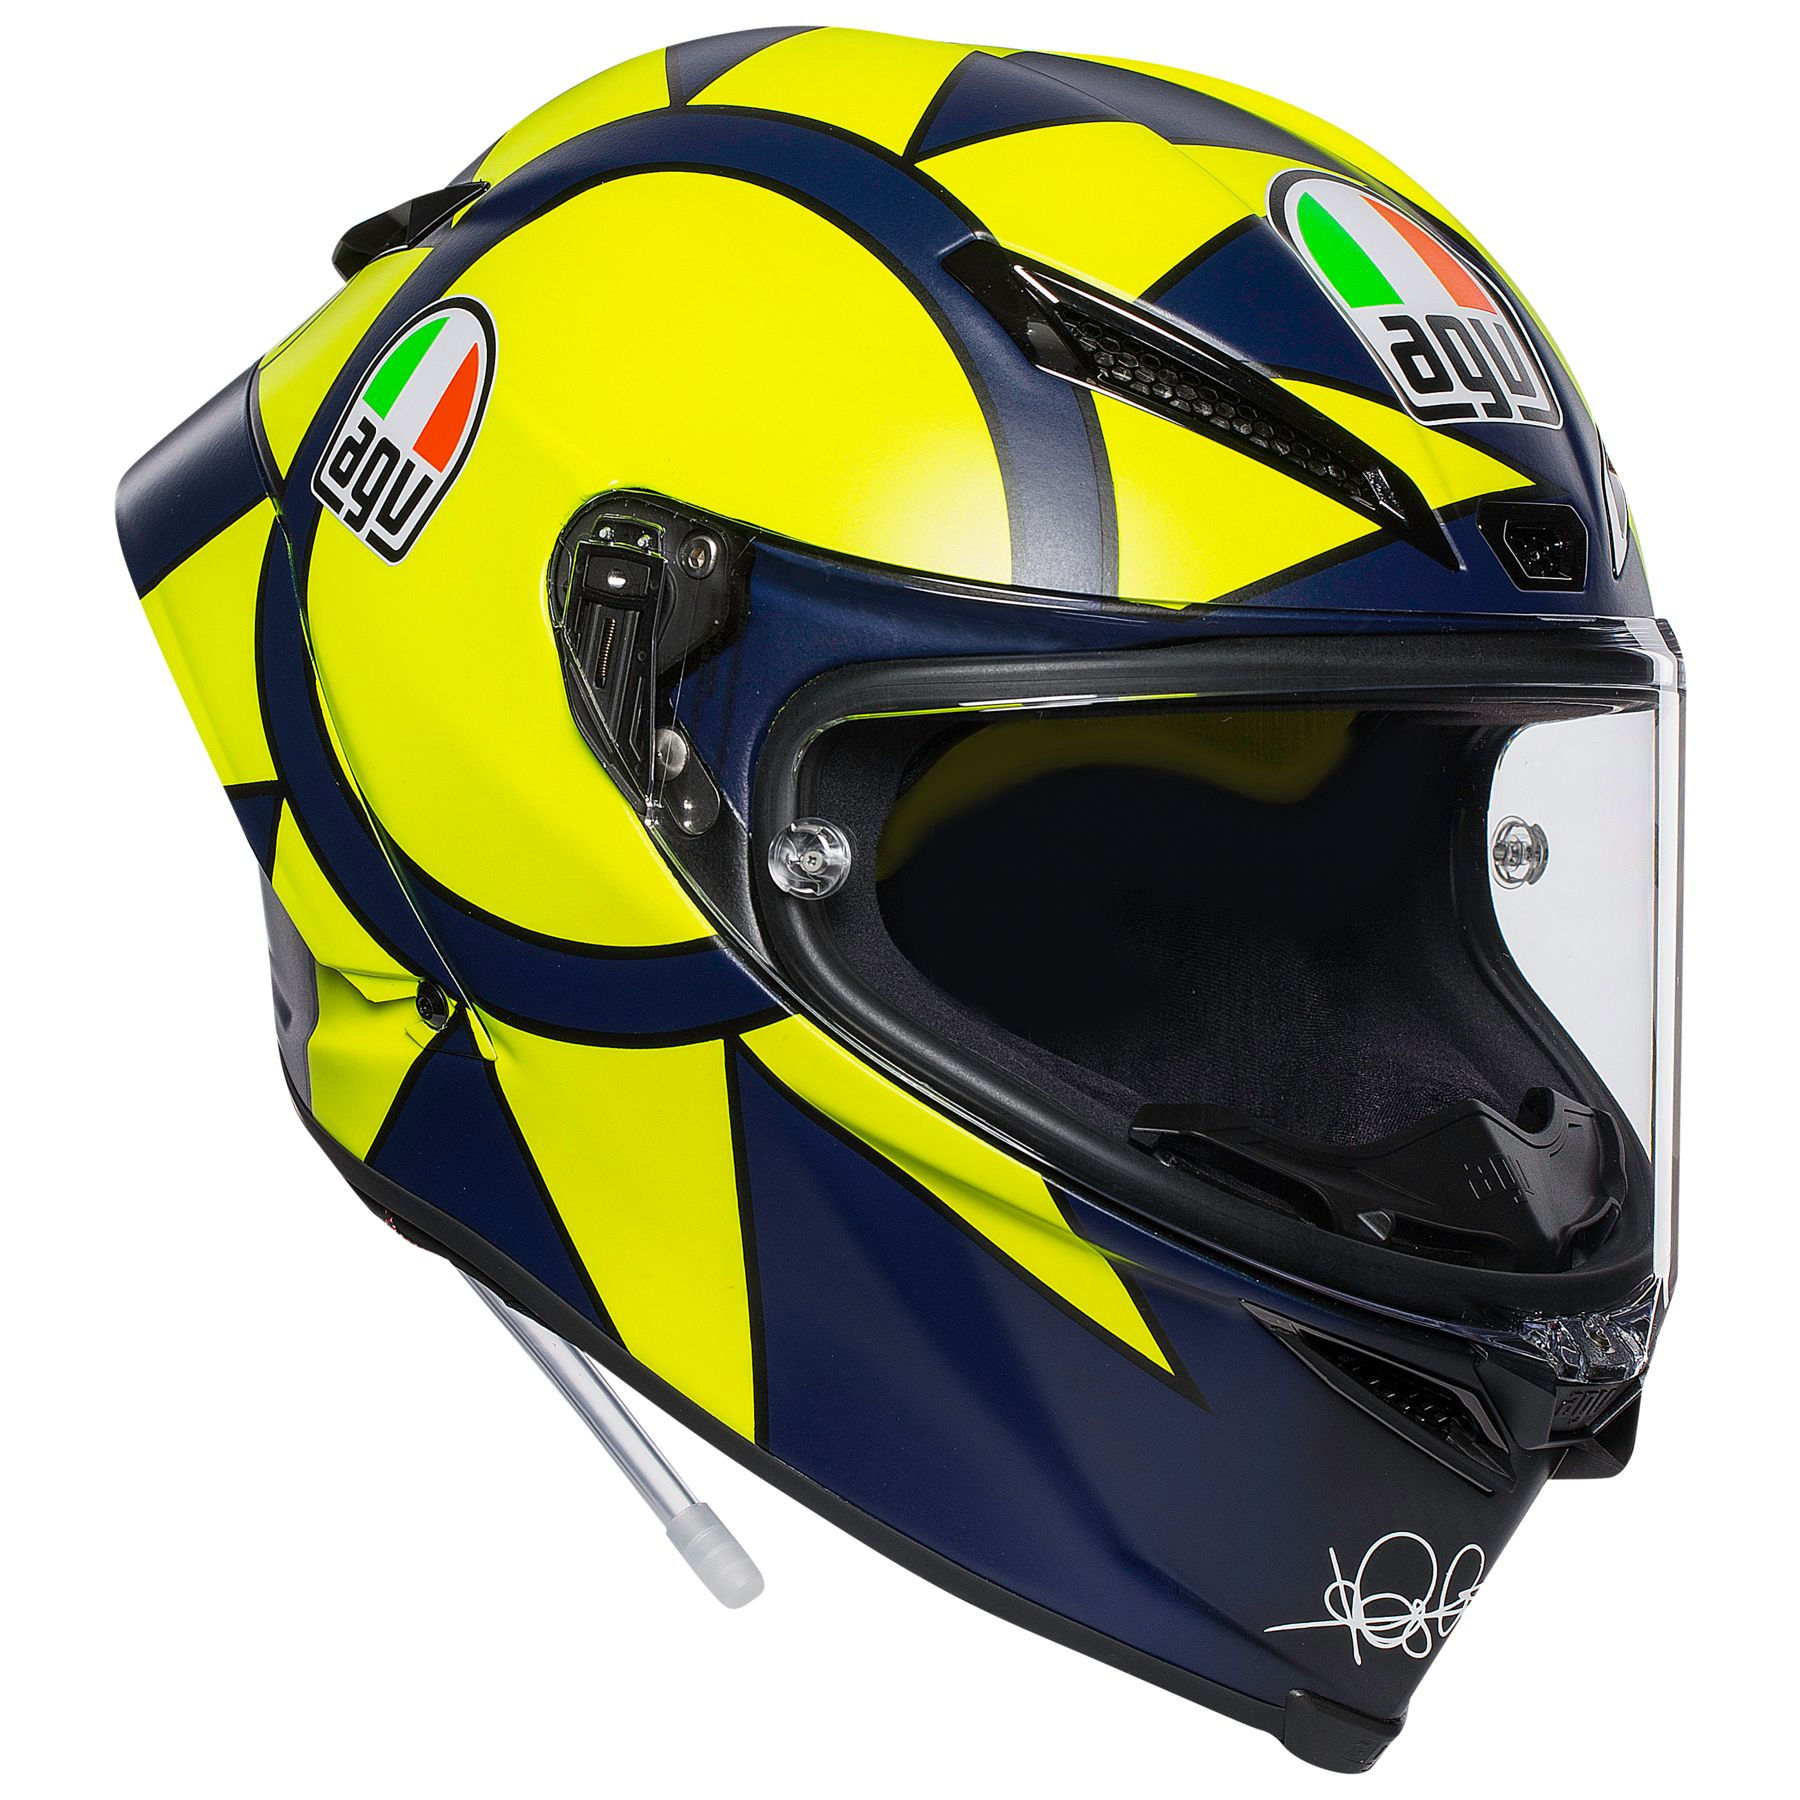 AGV Replacement Cheek Pads for Pista GP R Helmets Pick Size